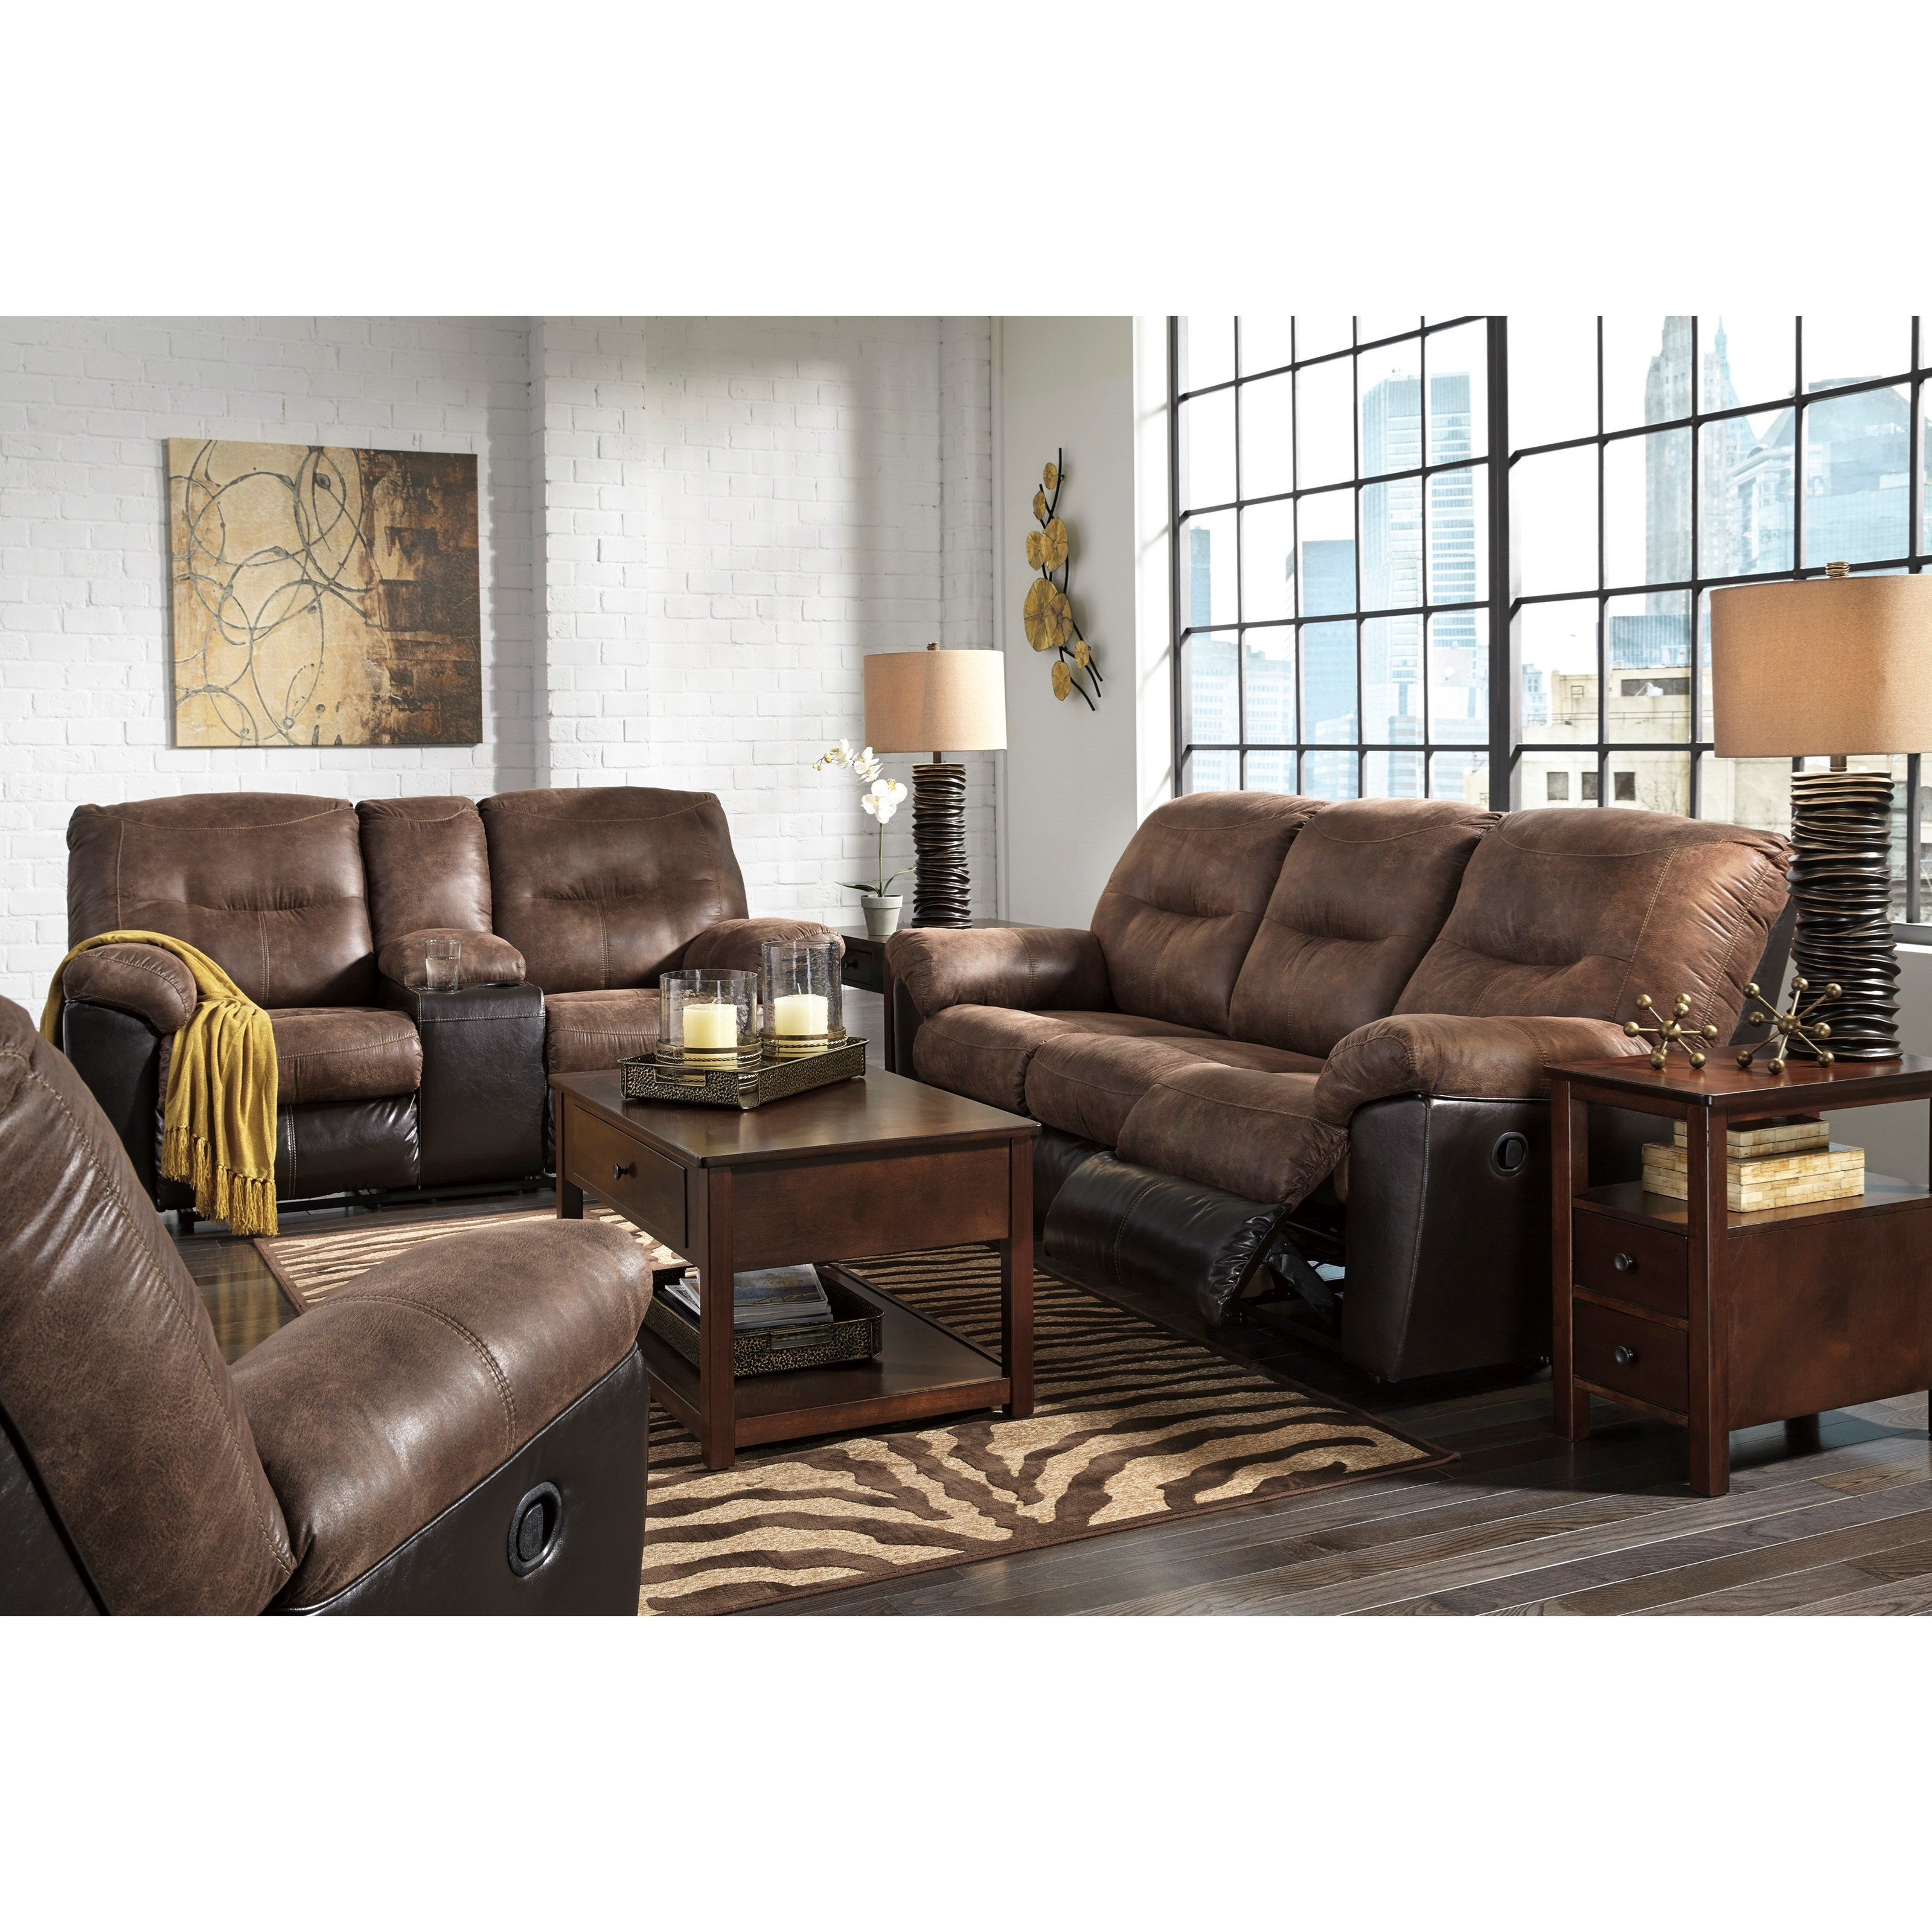 Signature Design by Ashley Follett Two-Tone Faux Leather Rocker Recliner - Royal Furniture ...